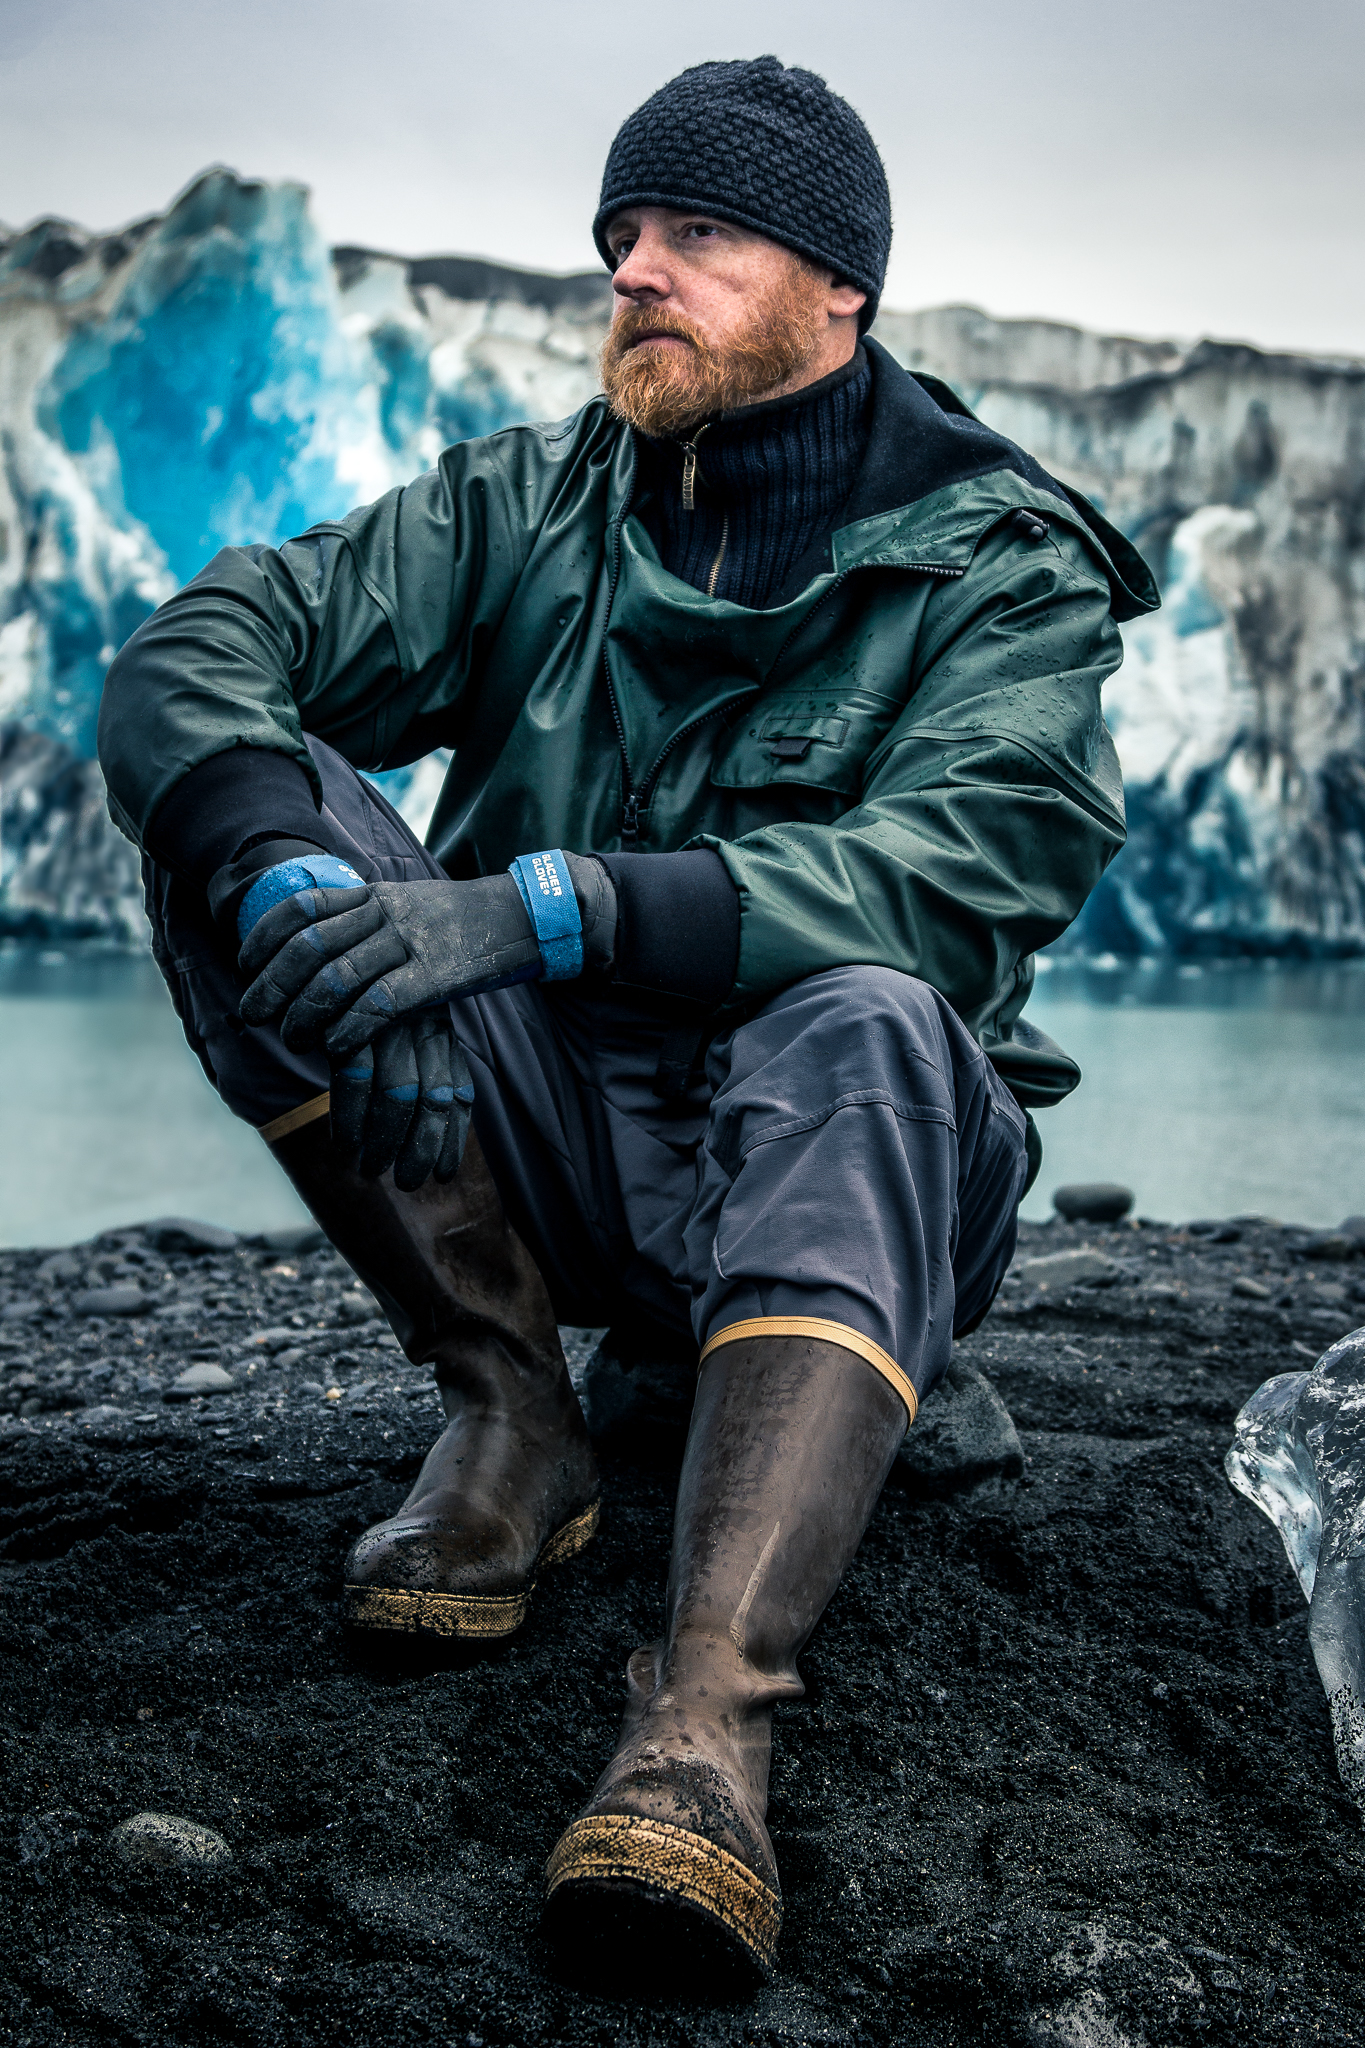 Michael Sharp, Adventurer